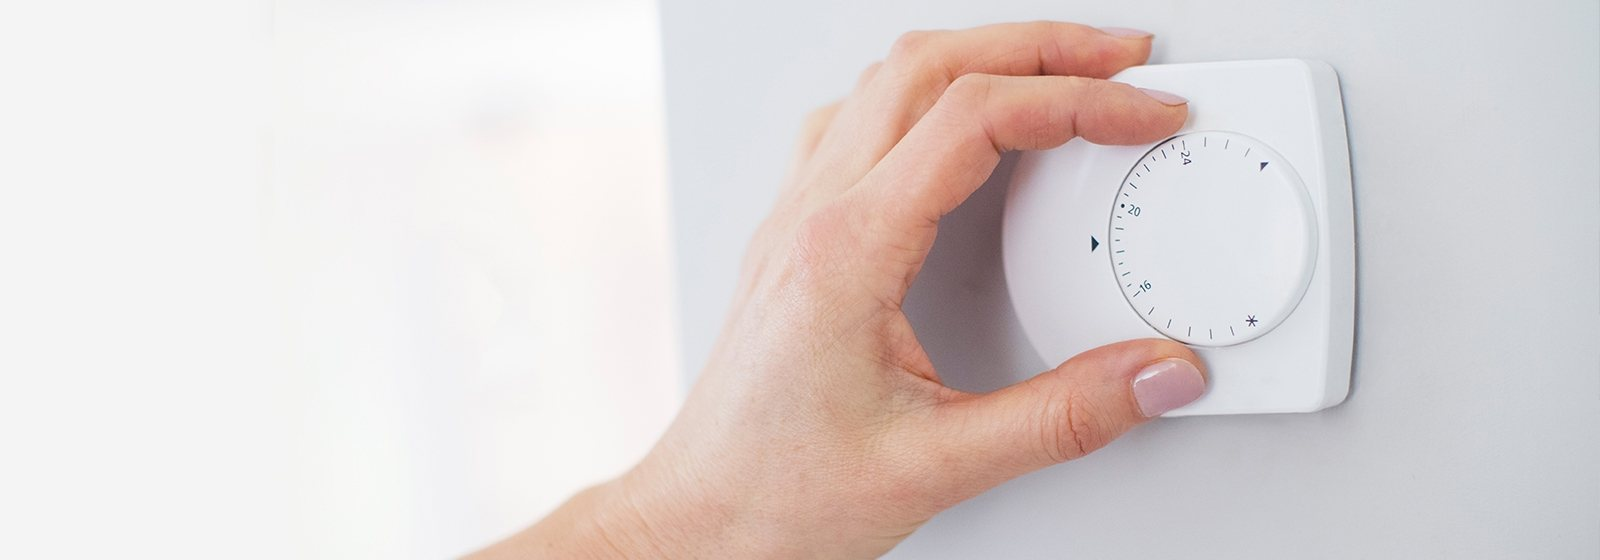 Energy conservation | Top tips for saving energy at home